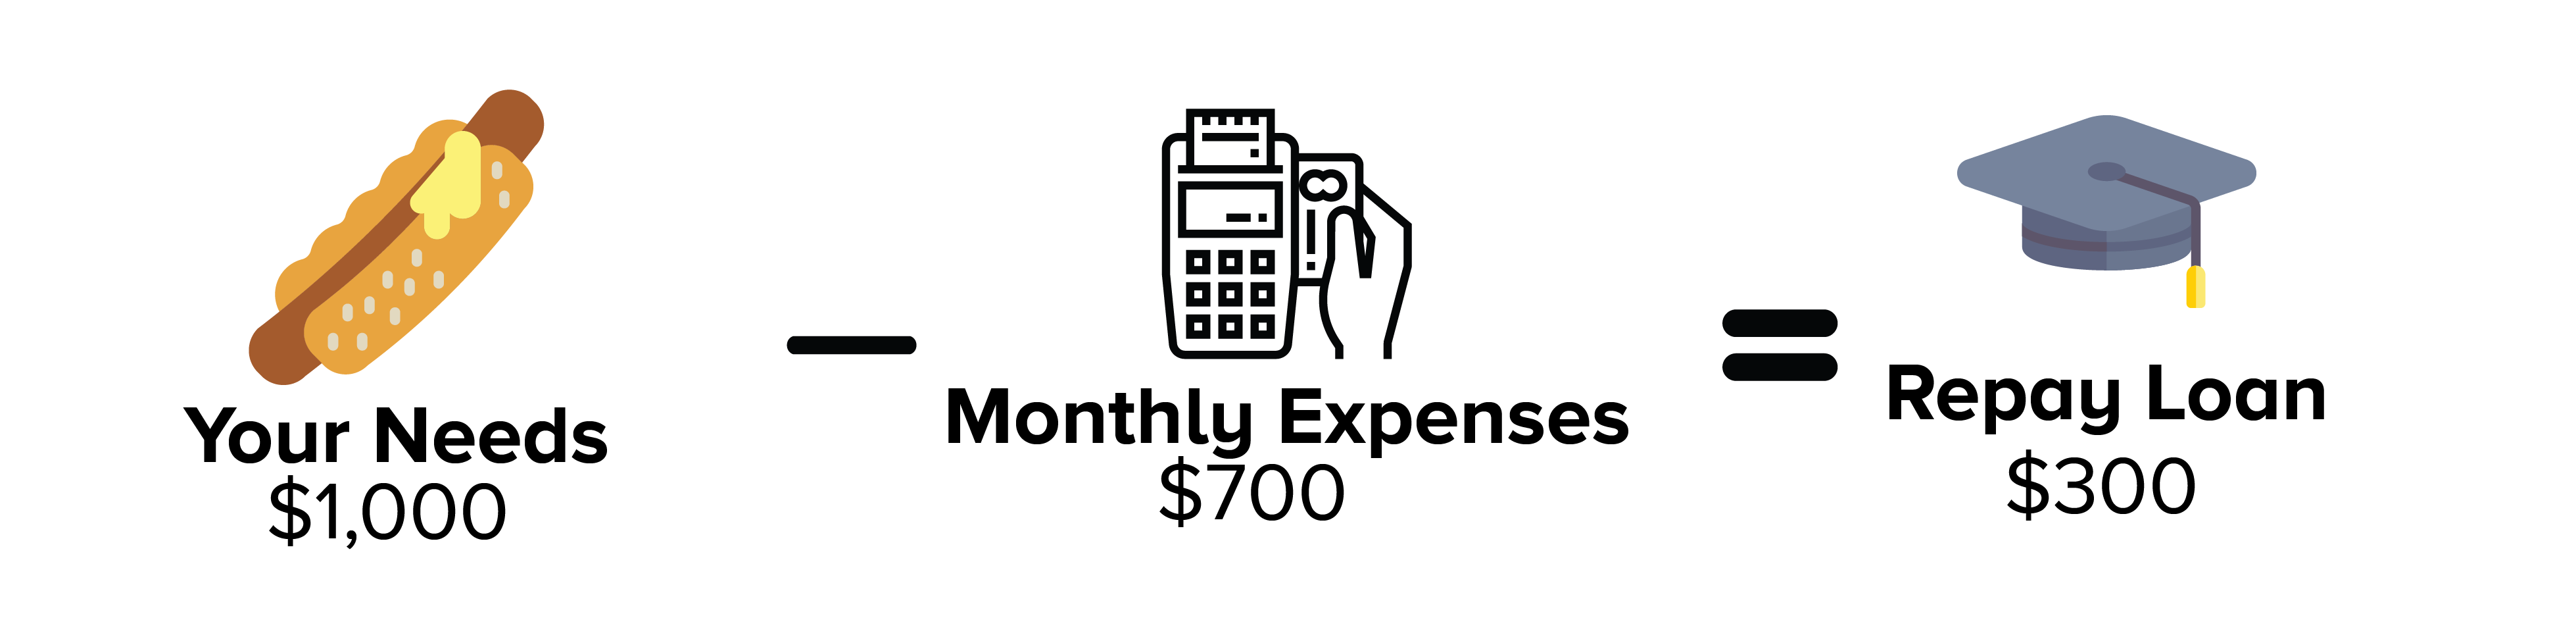 Monthly expenses left to repay loan